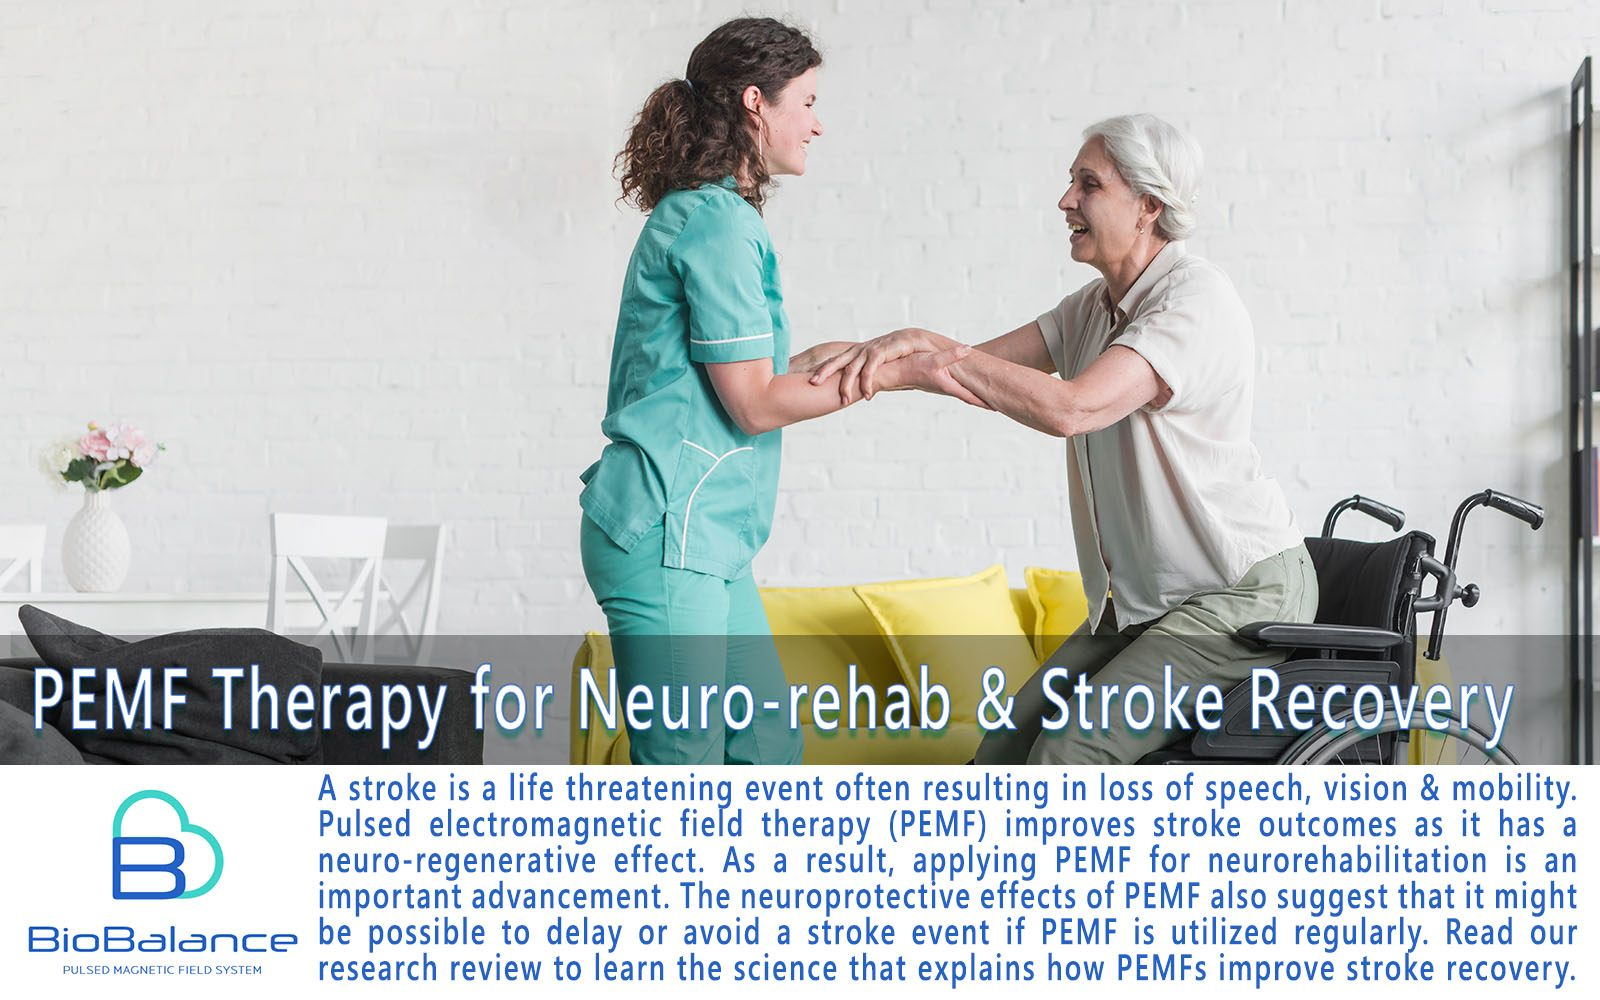 Stroke Rehabilitation with PEMF therapy